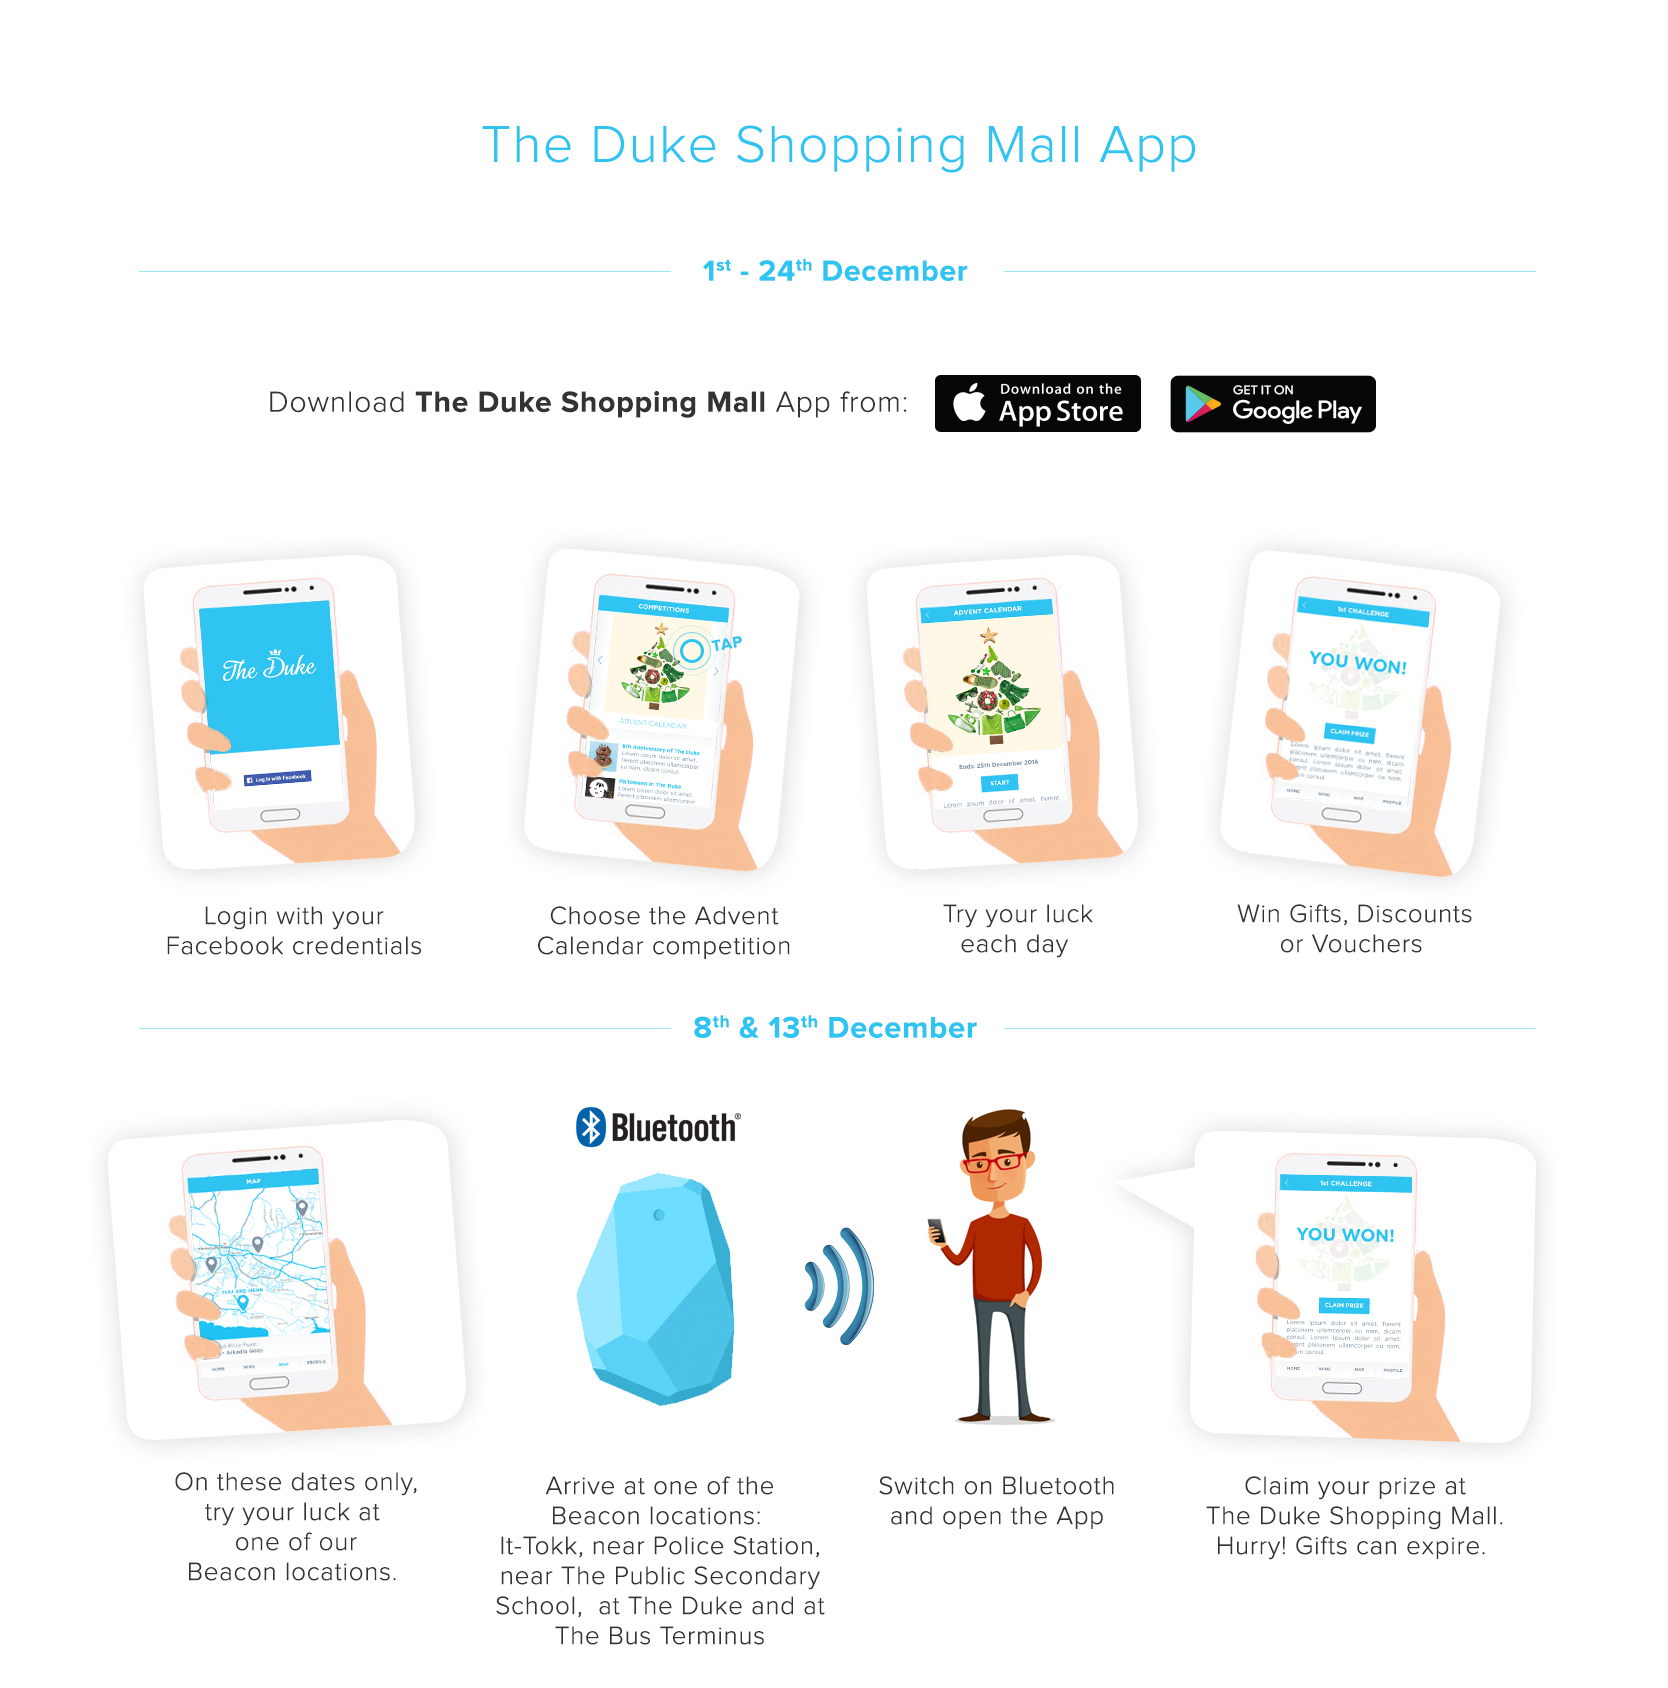 the-duke-app-keen-marketing-how-to-use